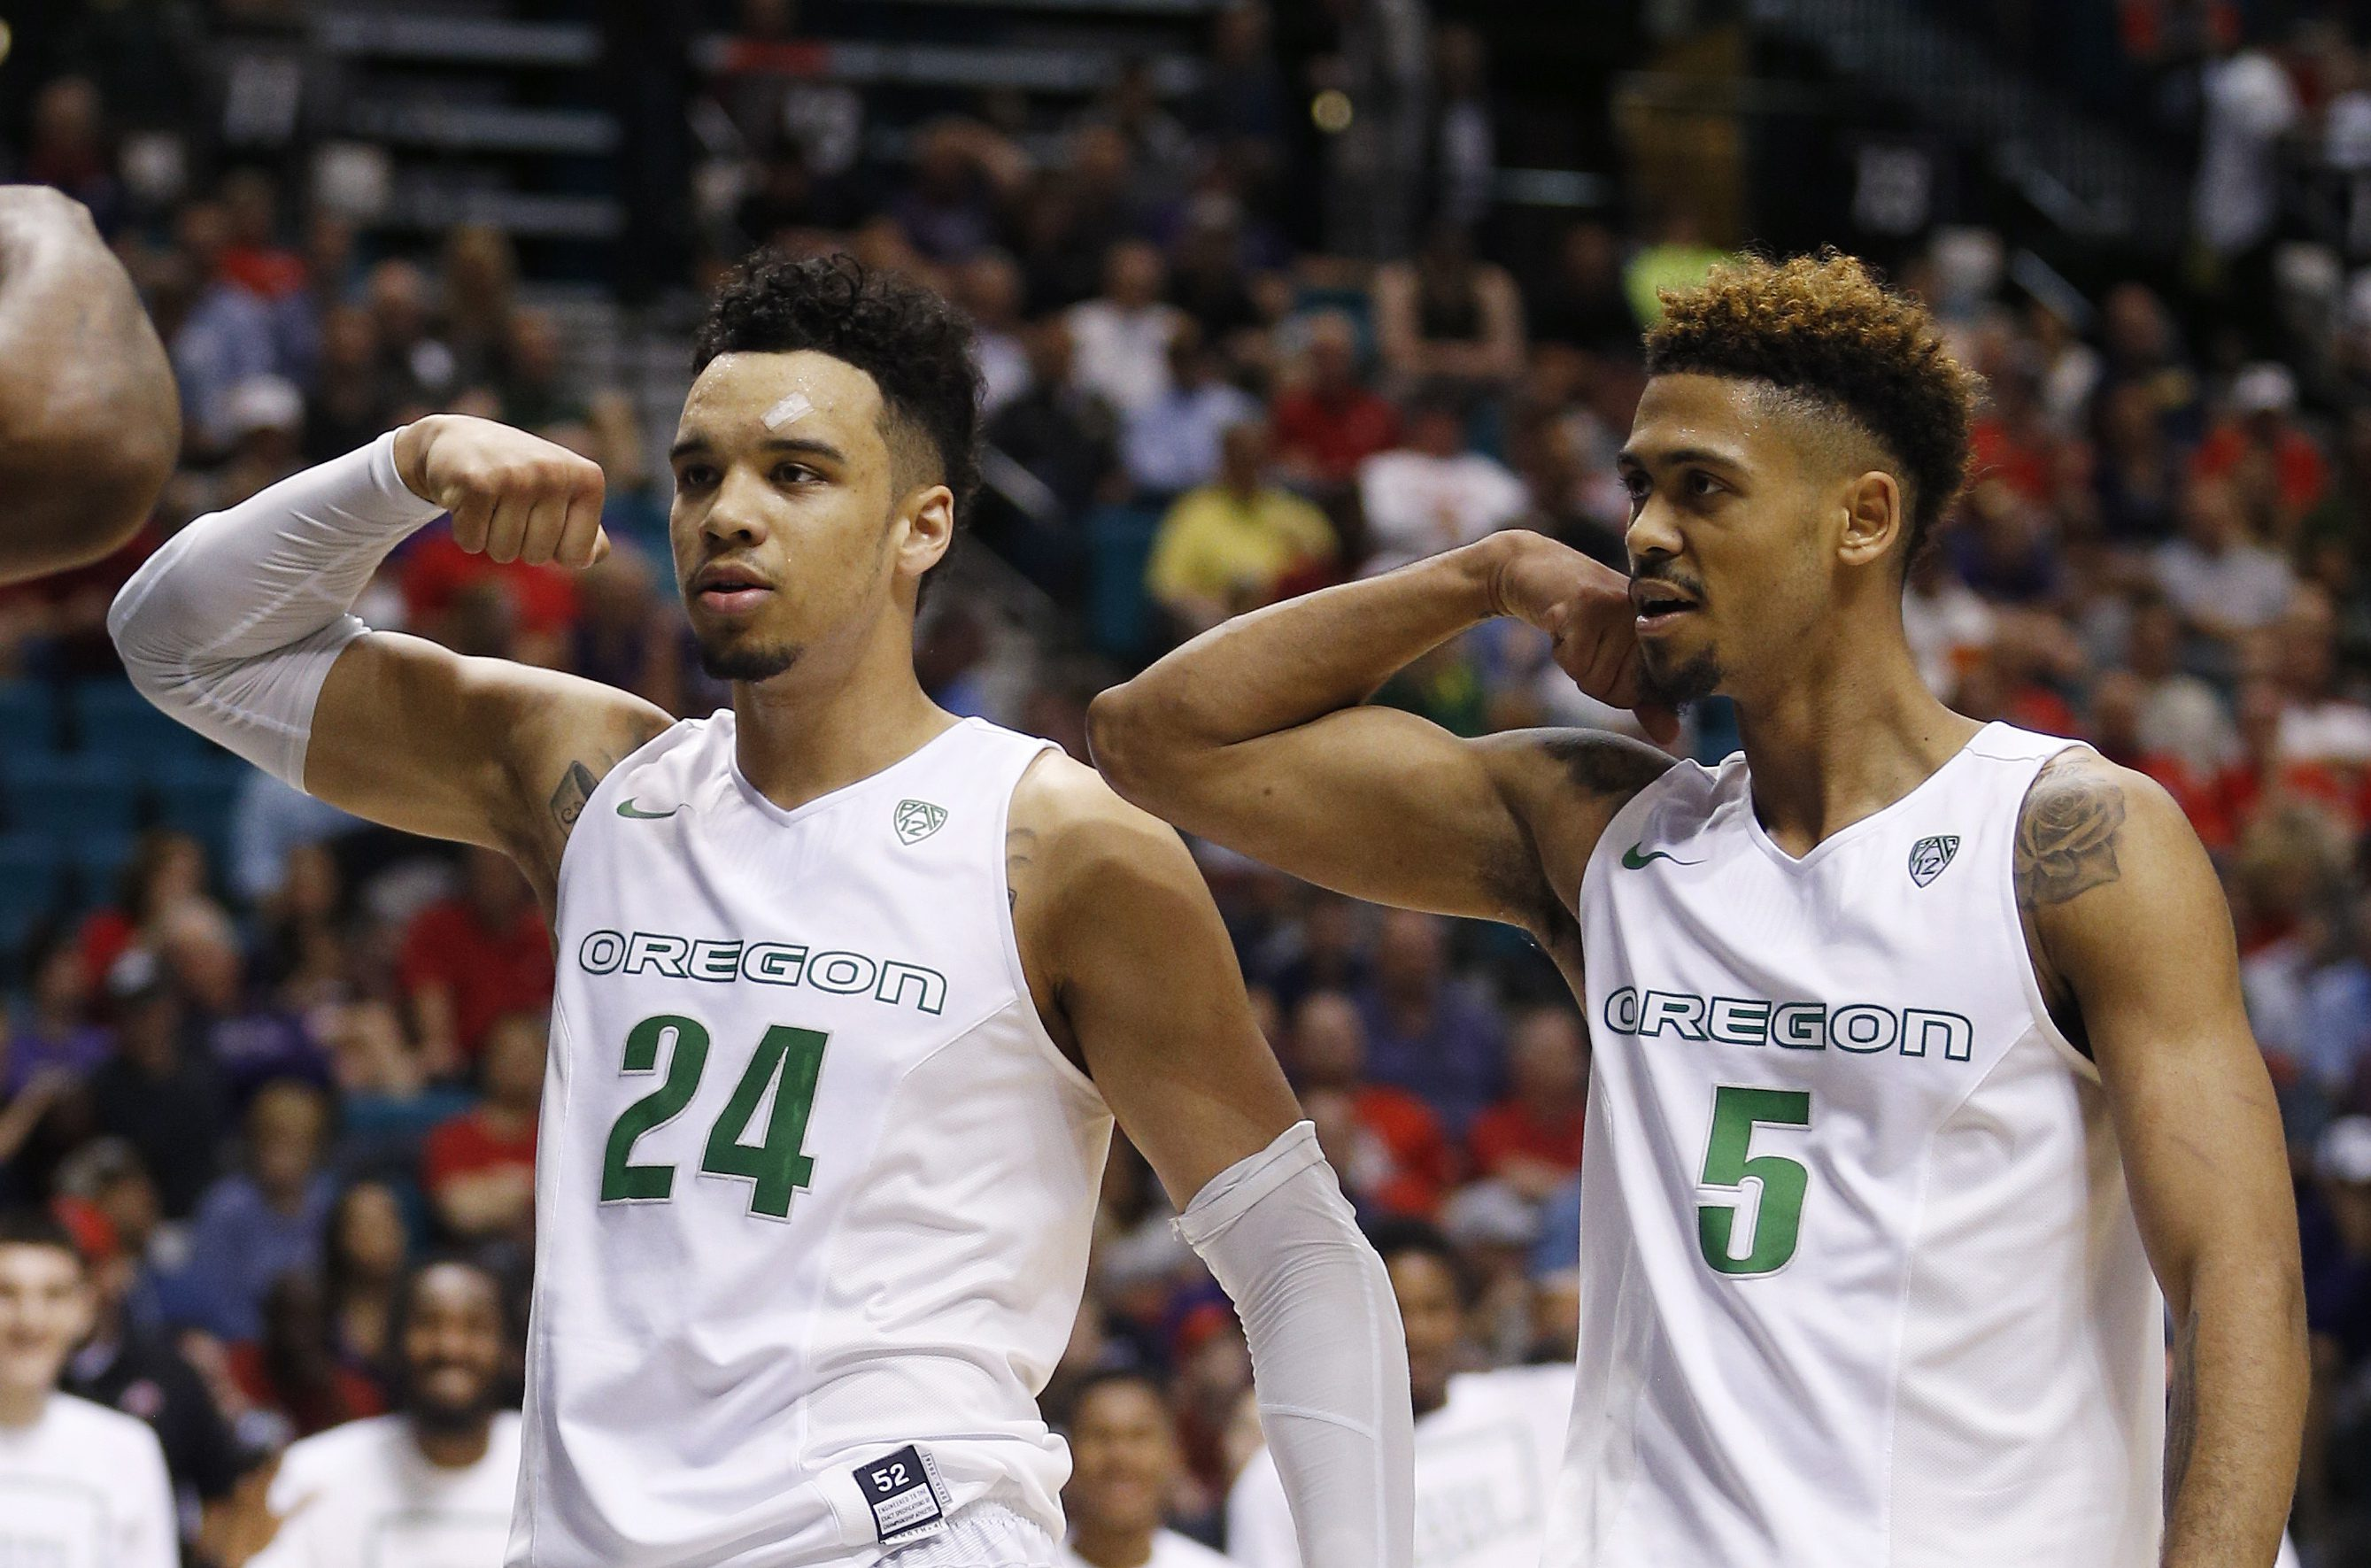 Oregon forward Elgin Cook, from left, forward Dillon Brooks and guard Tyler Dorsey react after a play against Washington during the second half of an NCAA college basketball game in the quarterfinal round of the Pac-12 men's tournament Thursday, March 10, 2016, in Las Vegas. Oregon won 83-77. (AP Photo/John Locher)